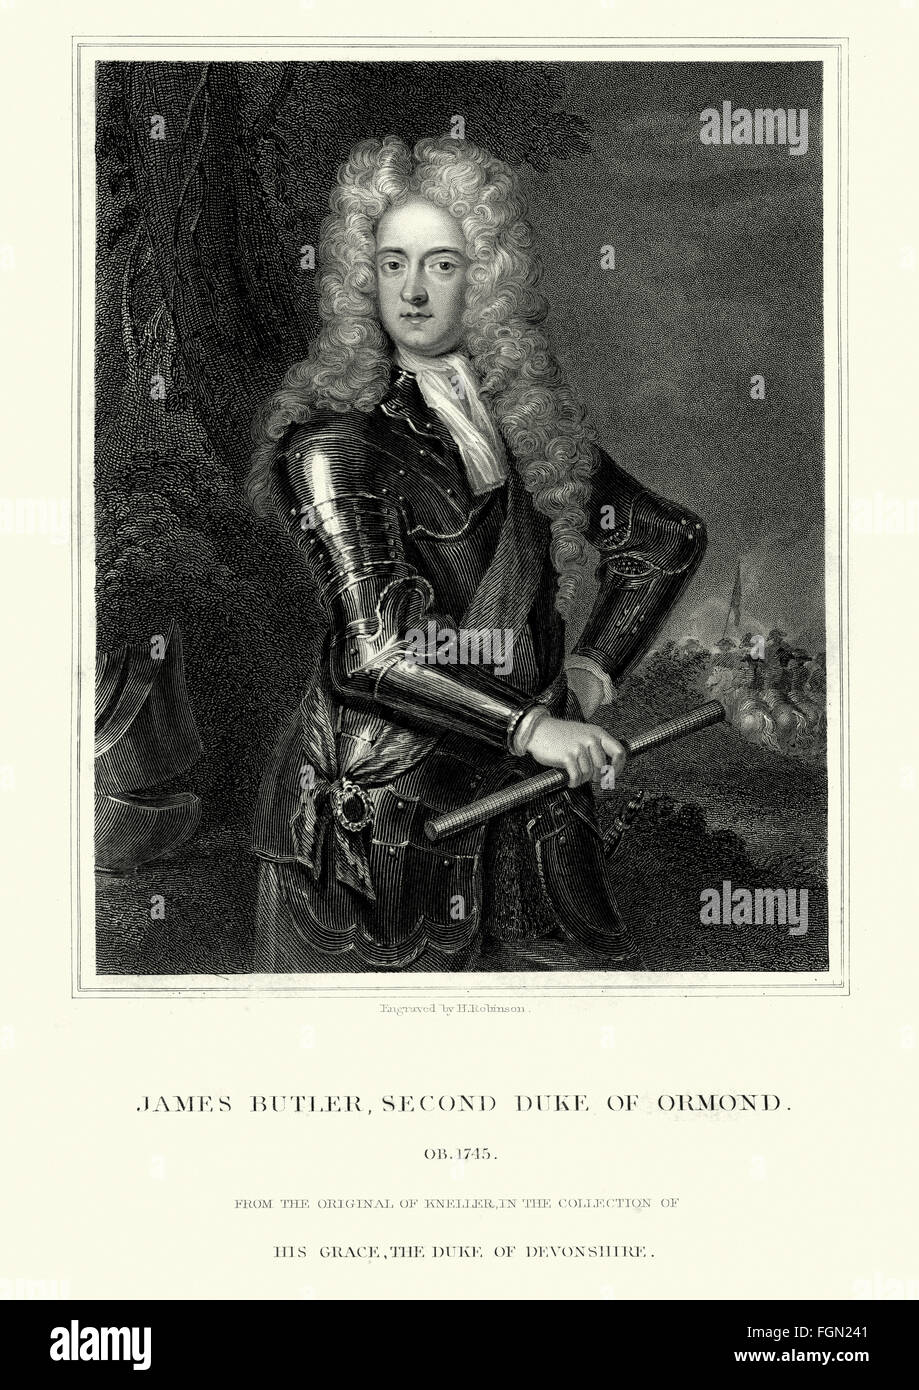 Portrait of James Butler, 2nd Duke of Ormonde 1665 to 1745 an Irish statesman and soldier. - Stock Image